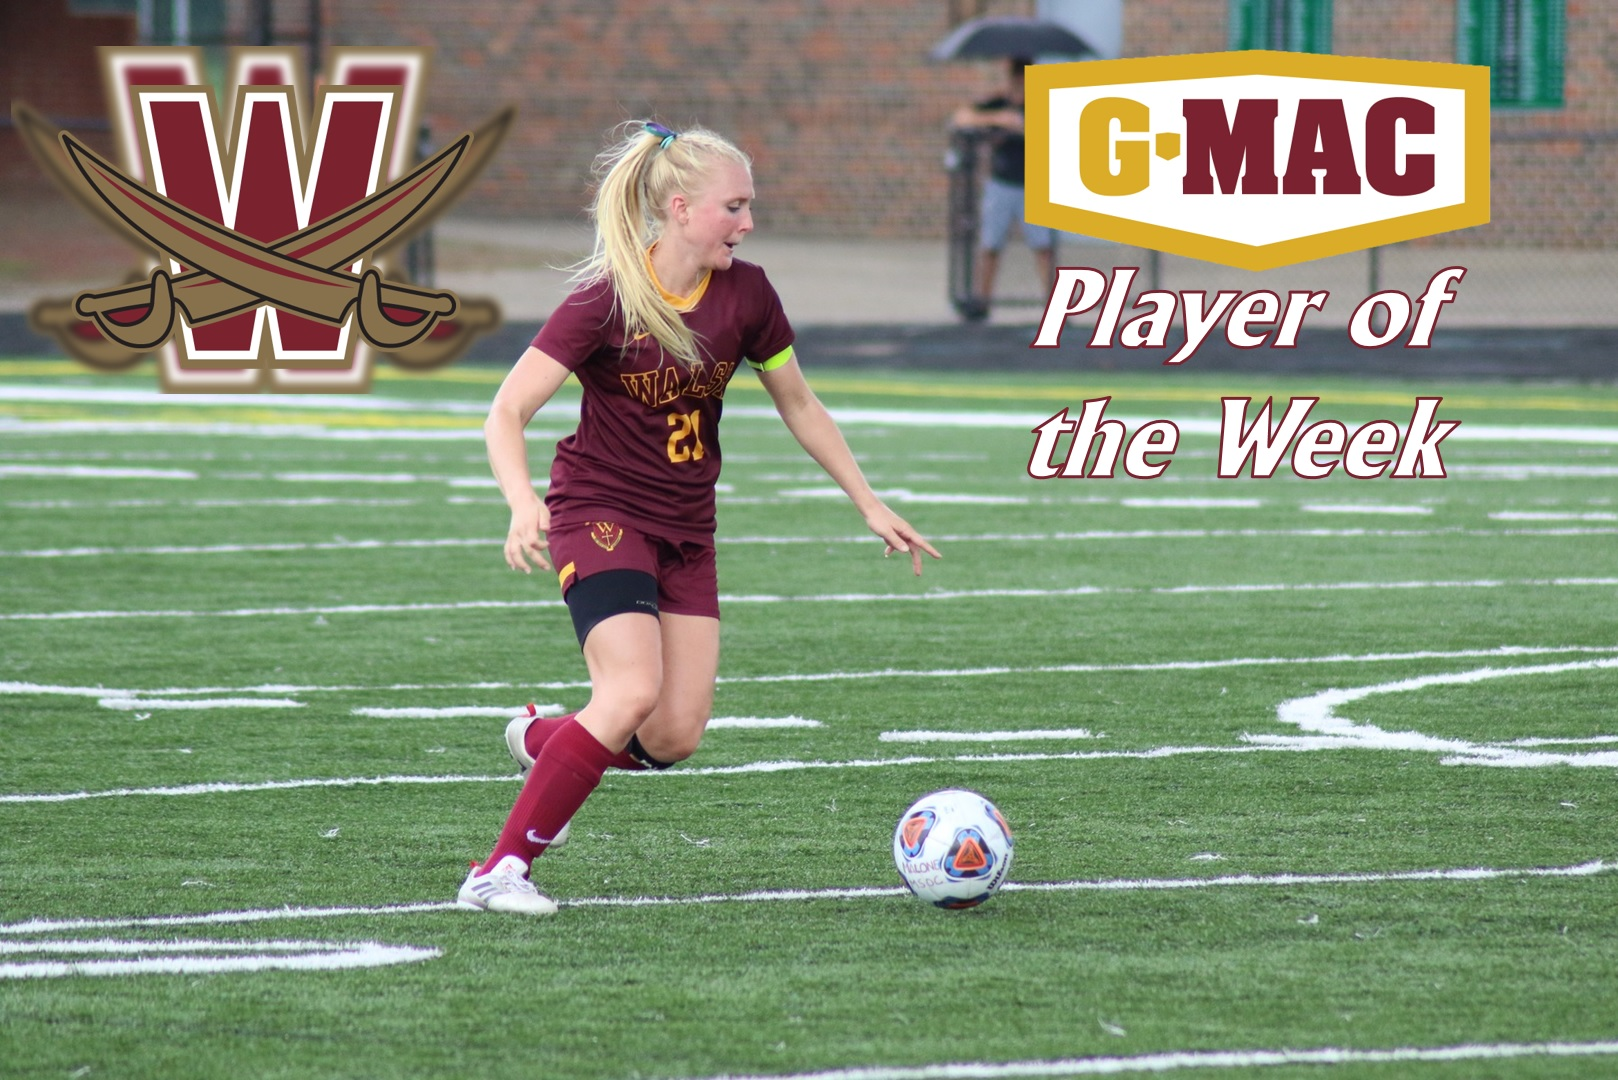 Swift Picked As G-MAC Defensive Player of the Week